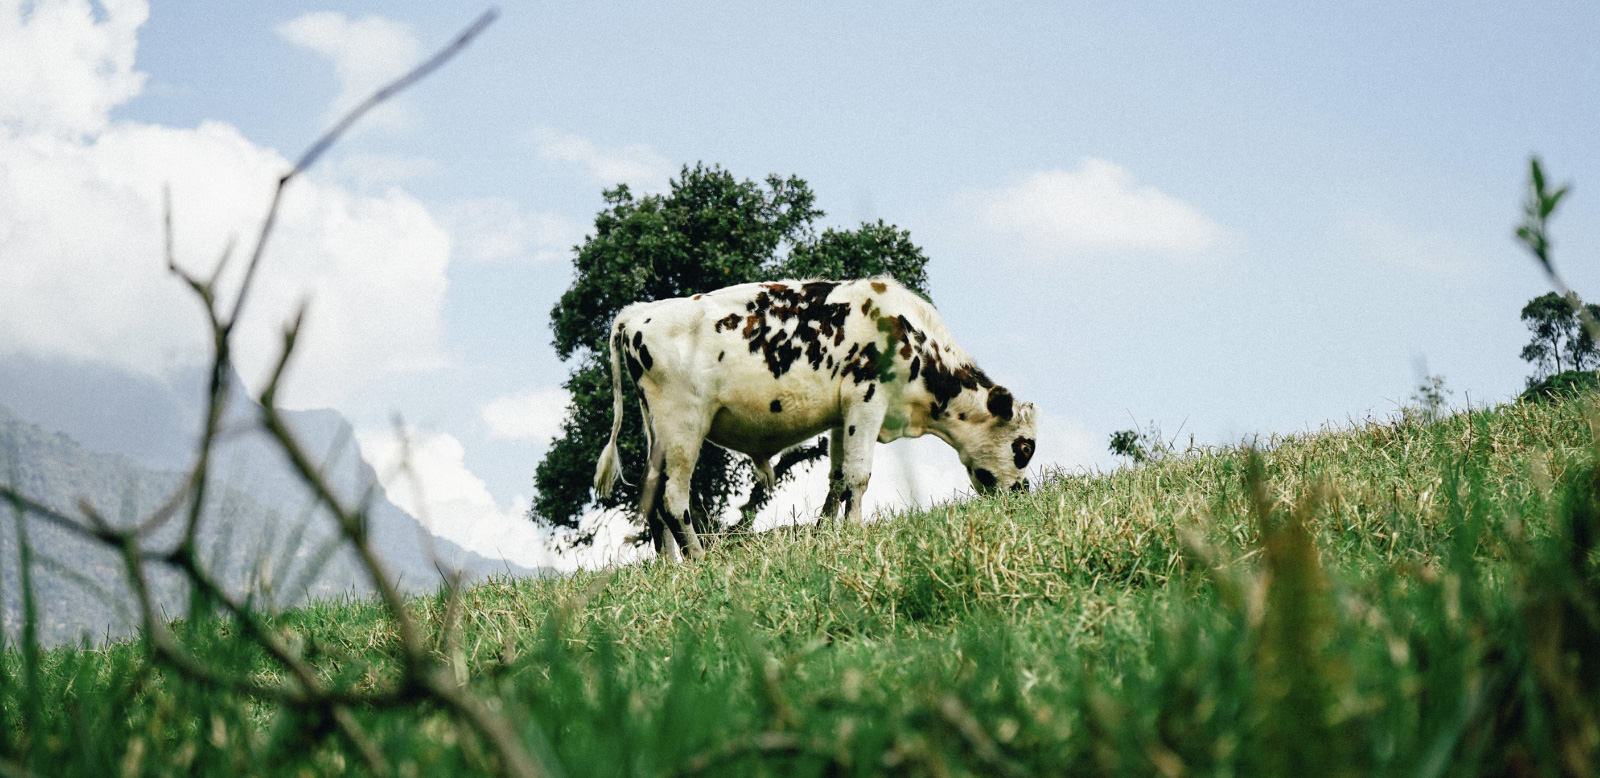 A cow out in the open, portraying grass-fed meat.